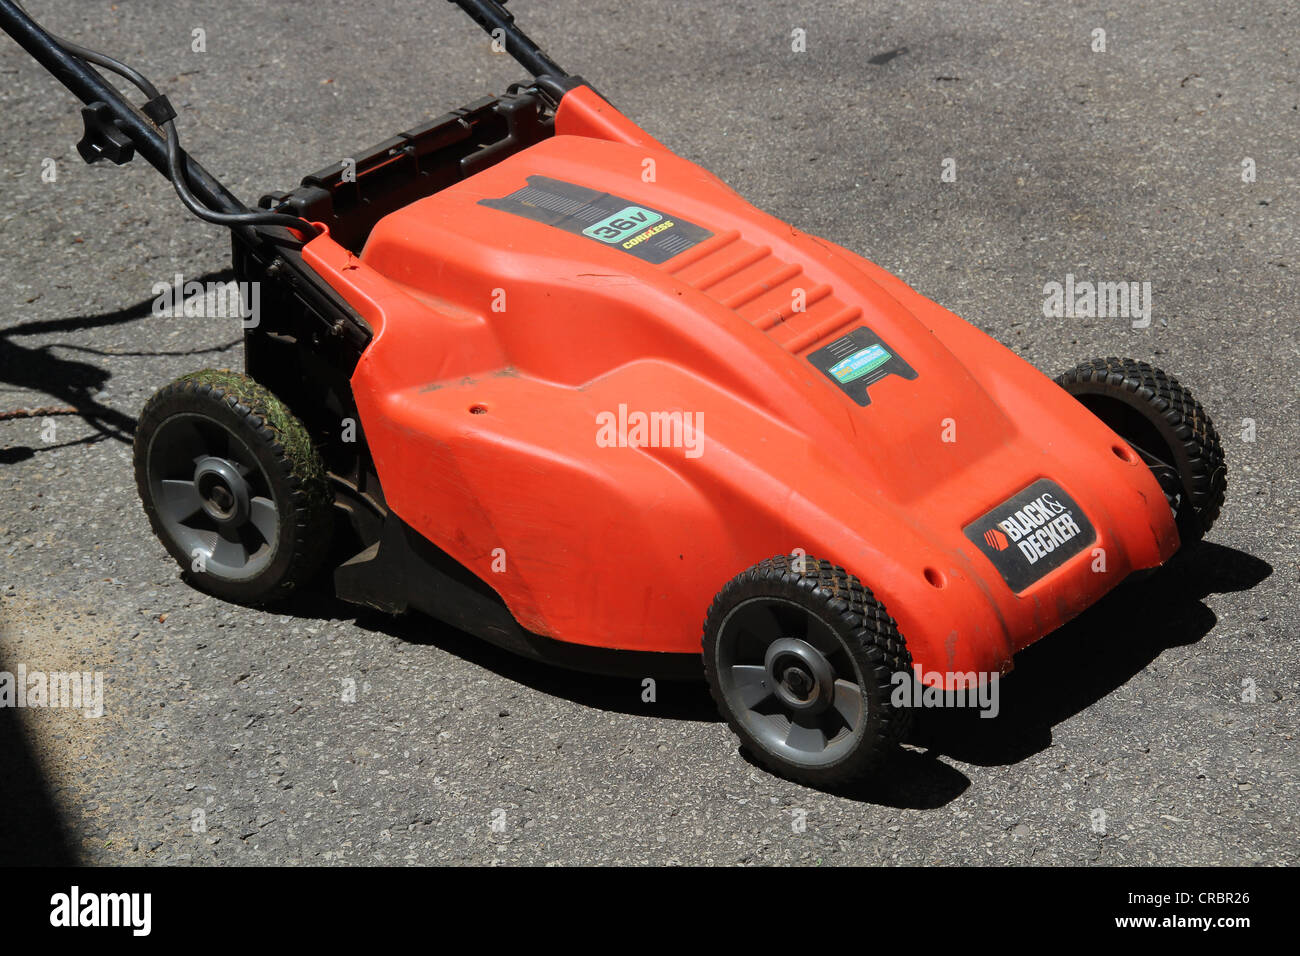 Orange rechargeable lawn mower - Stock Image